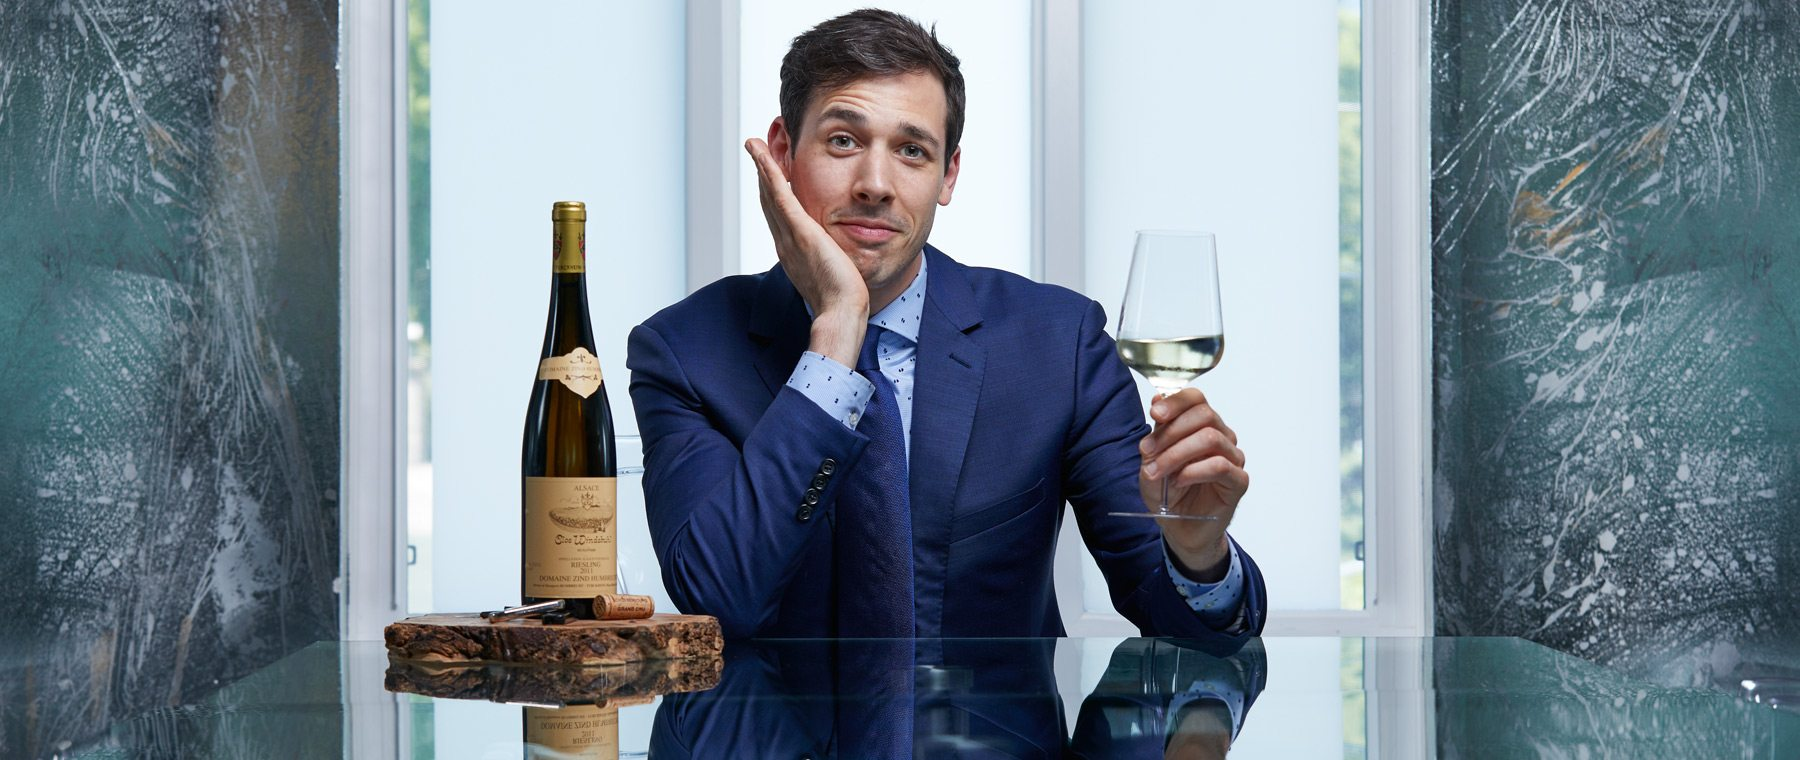 Master sommelier certification — a brutal process few pass. Atelier's Steve Robinson on what it takes & wines he looks for